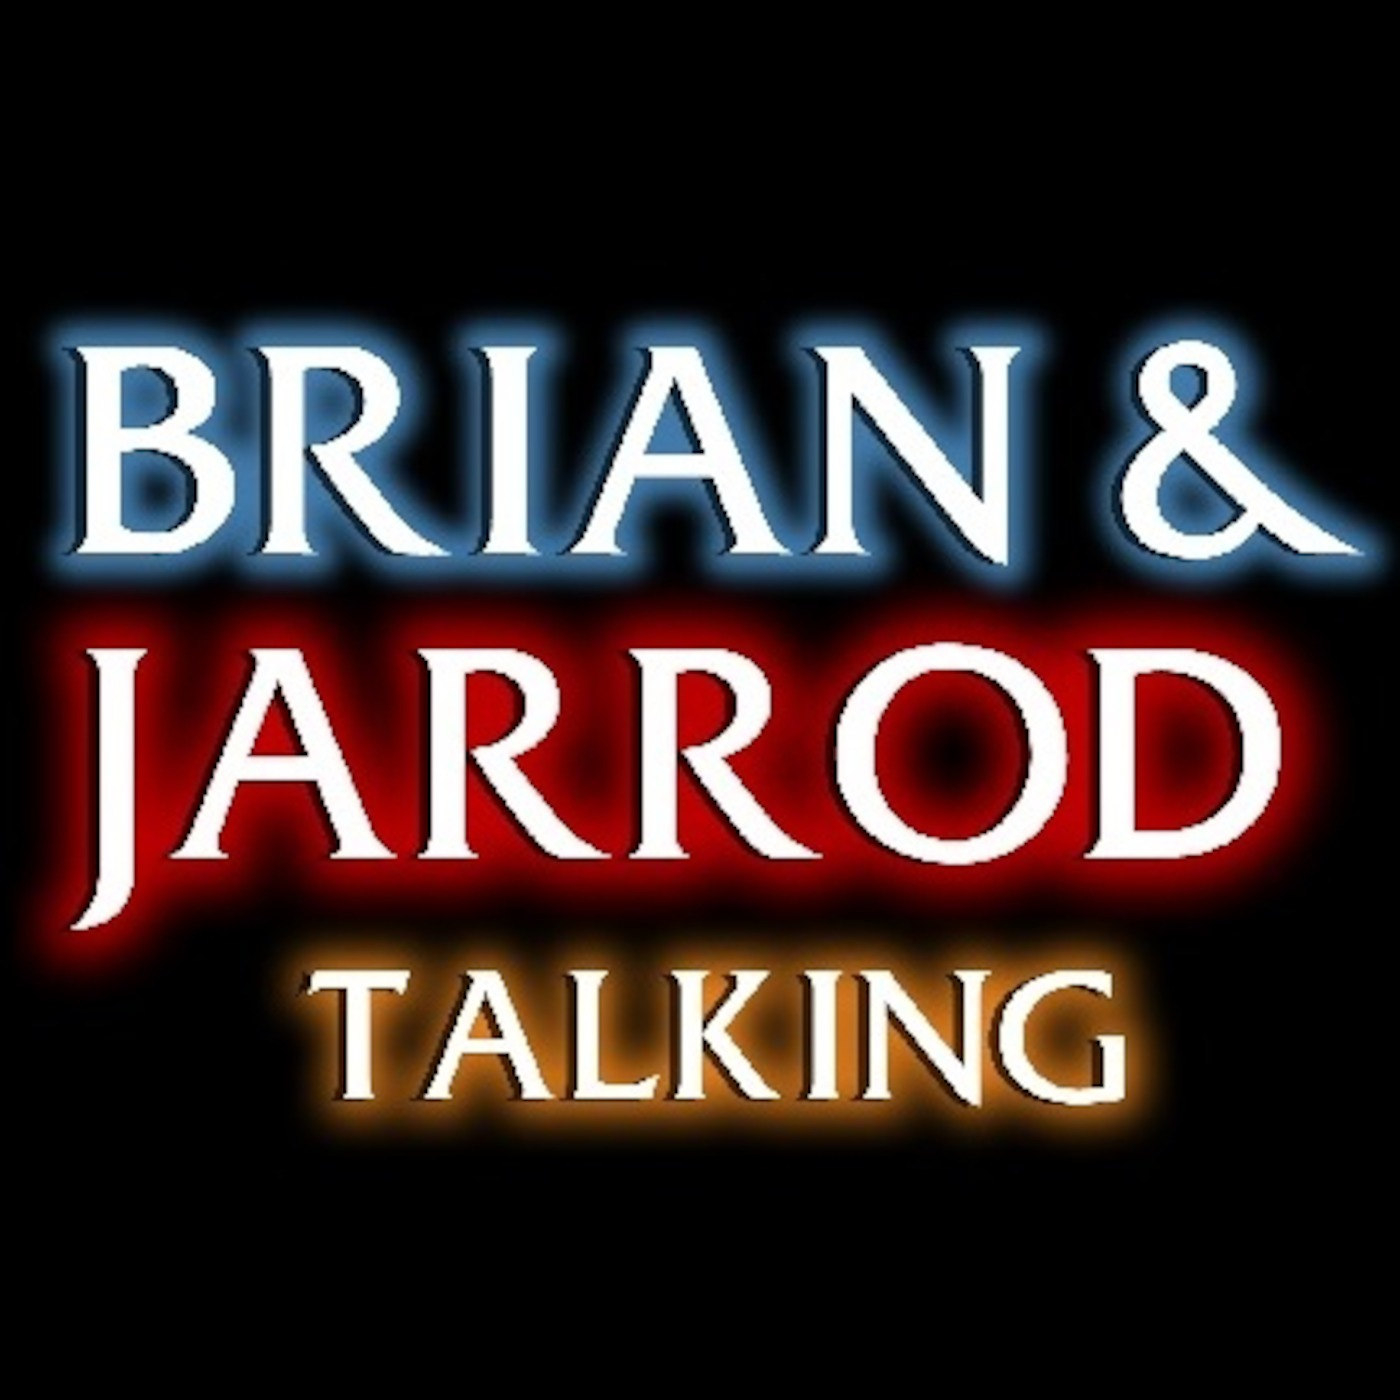 Brian & Jarrod Talking